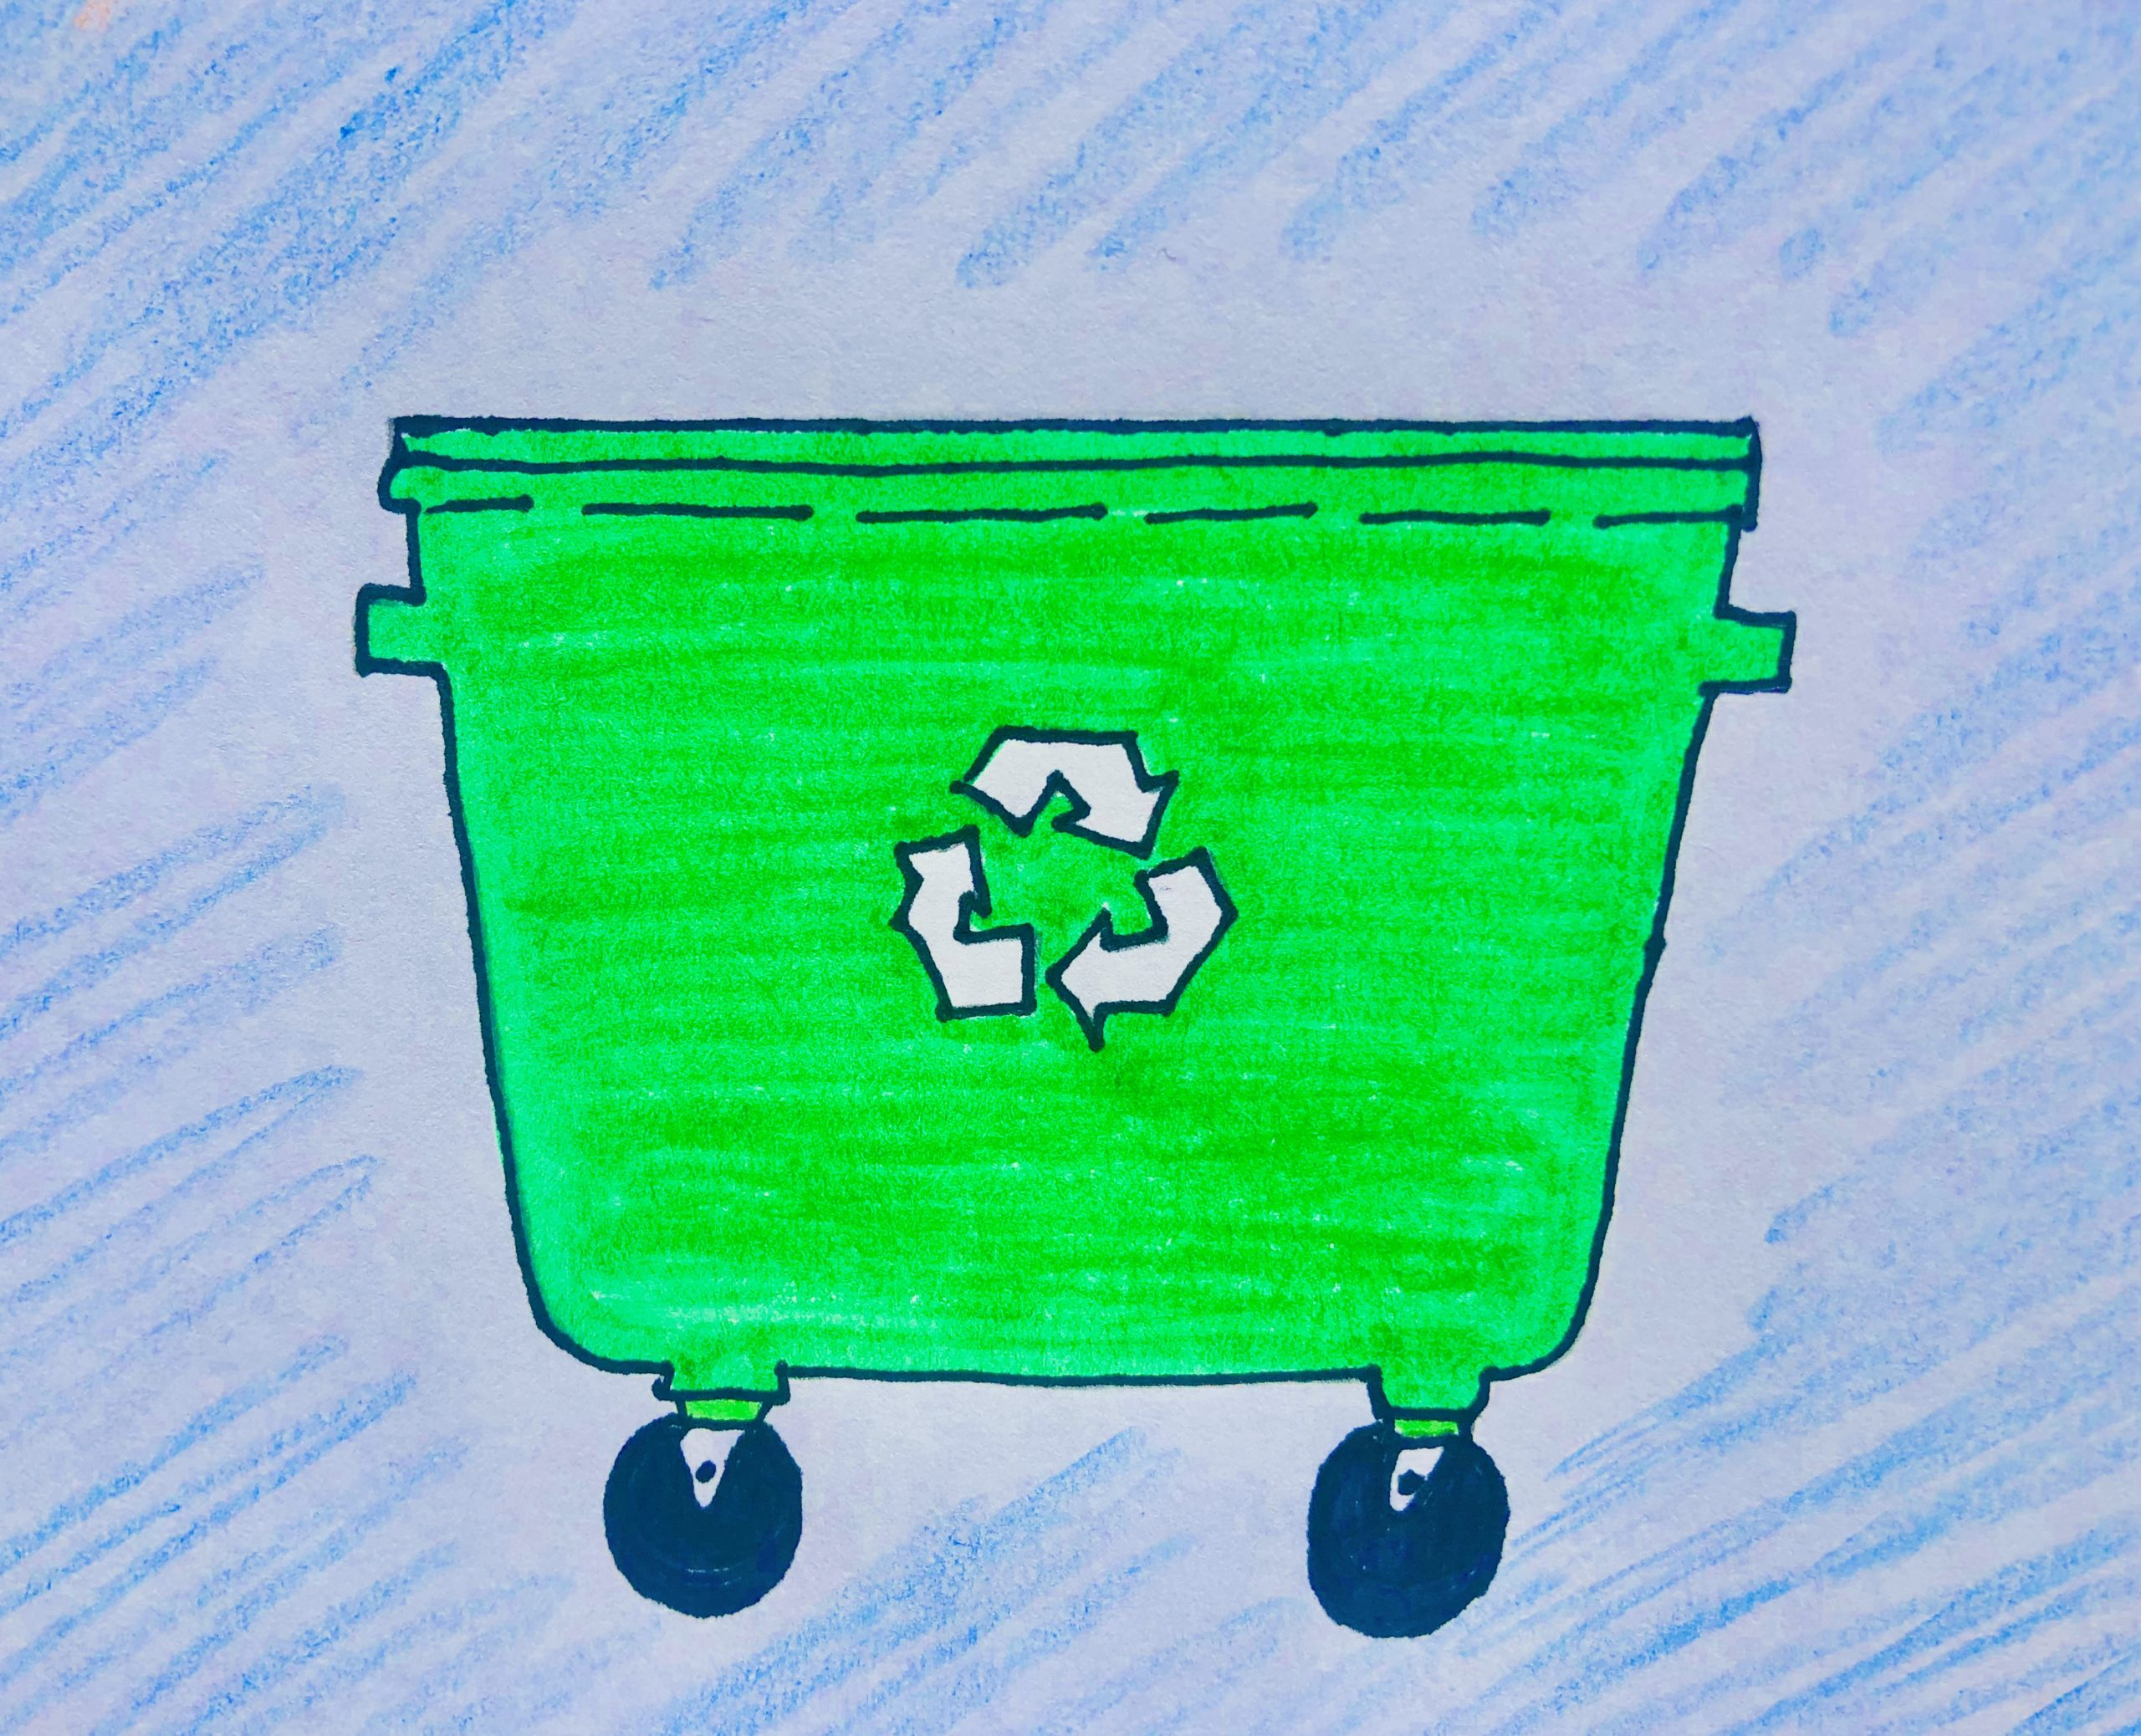 Drawing of a green recycling bin on two wheels with a blue background, from the mystery story for kids called The Case of the Stolen Stuffy.